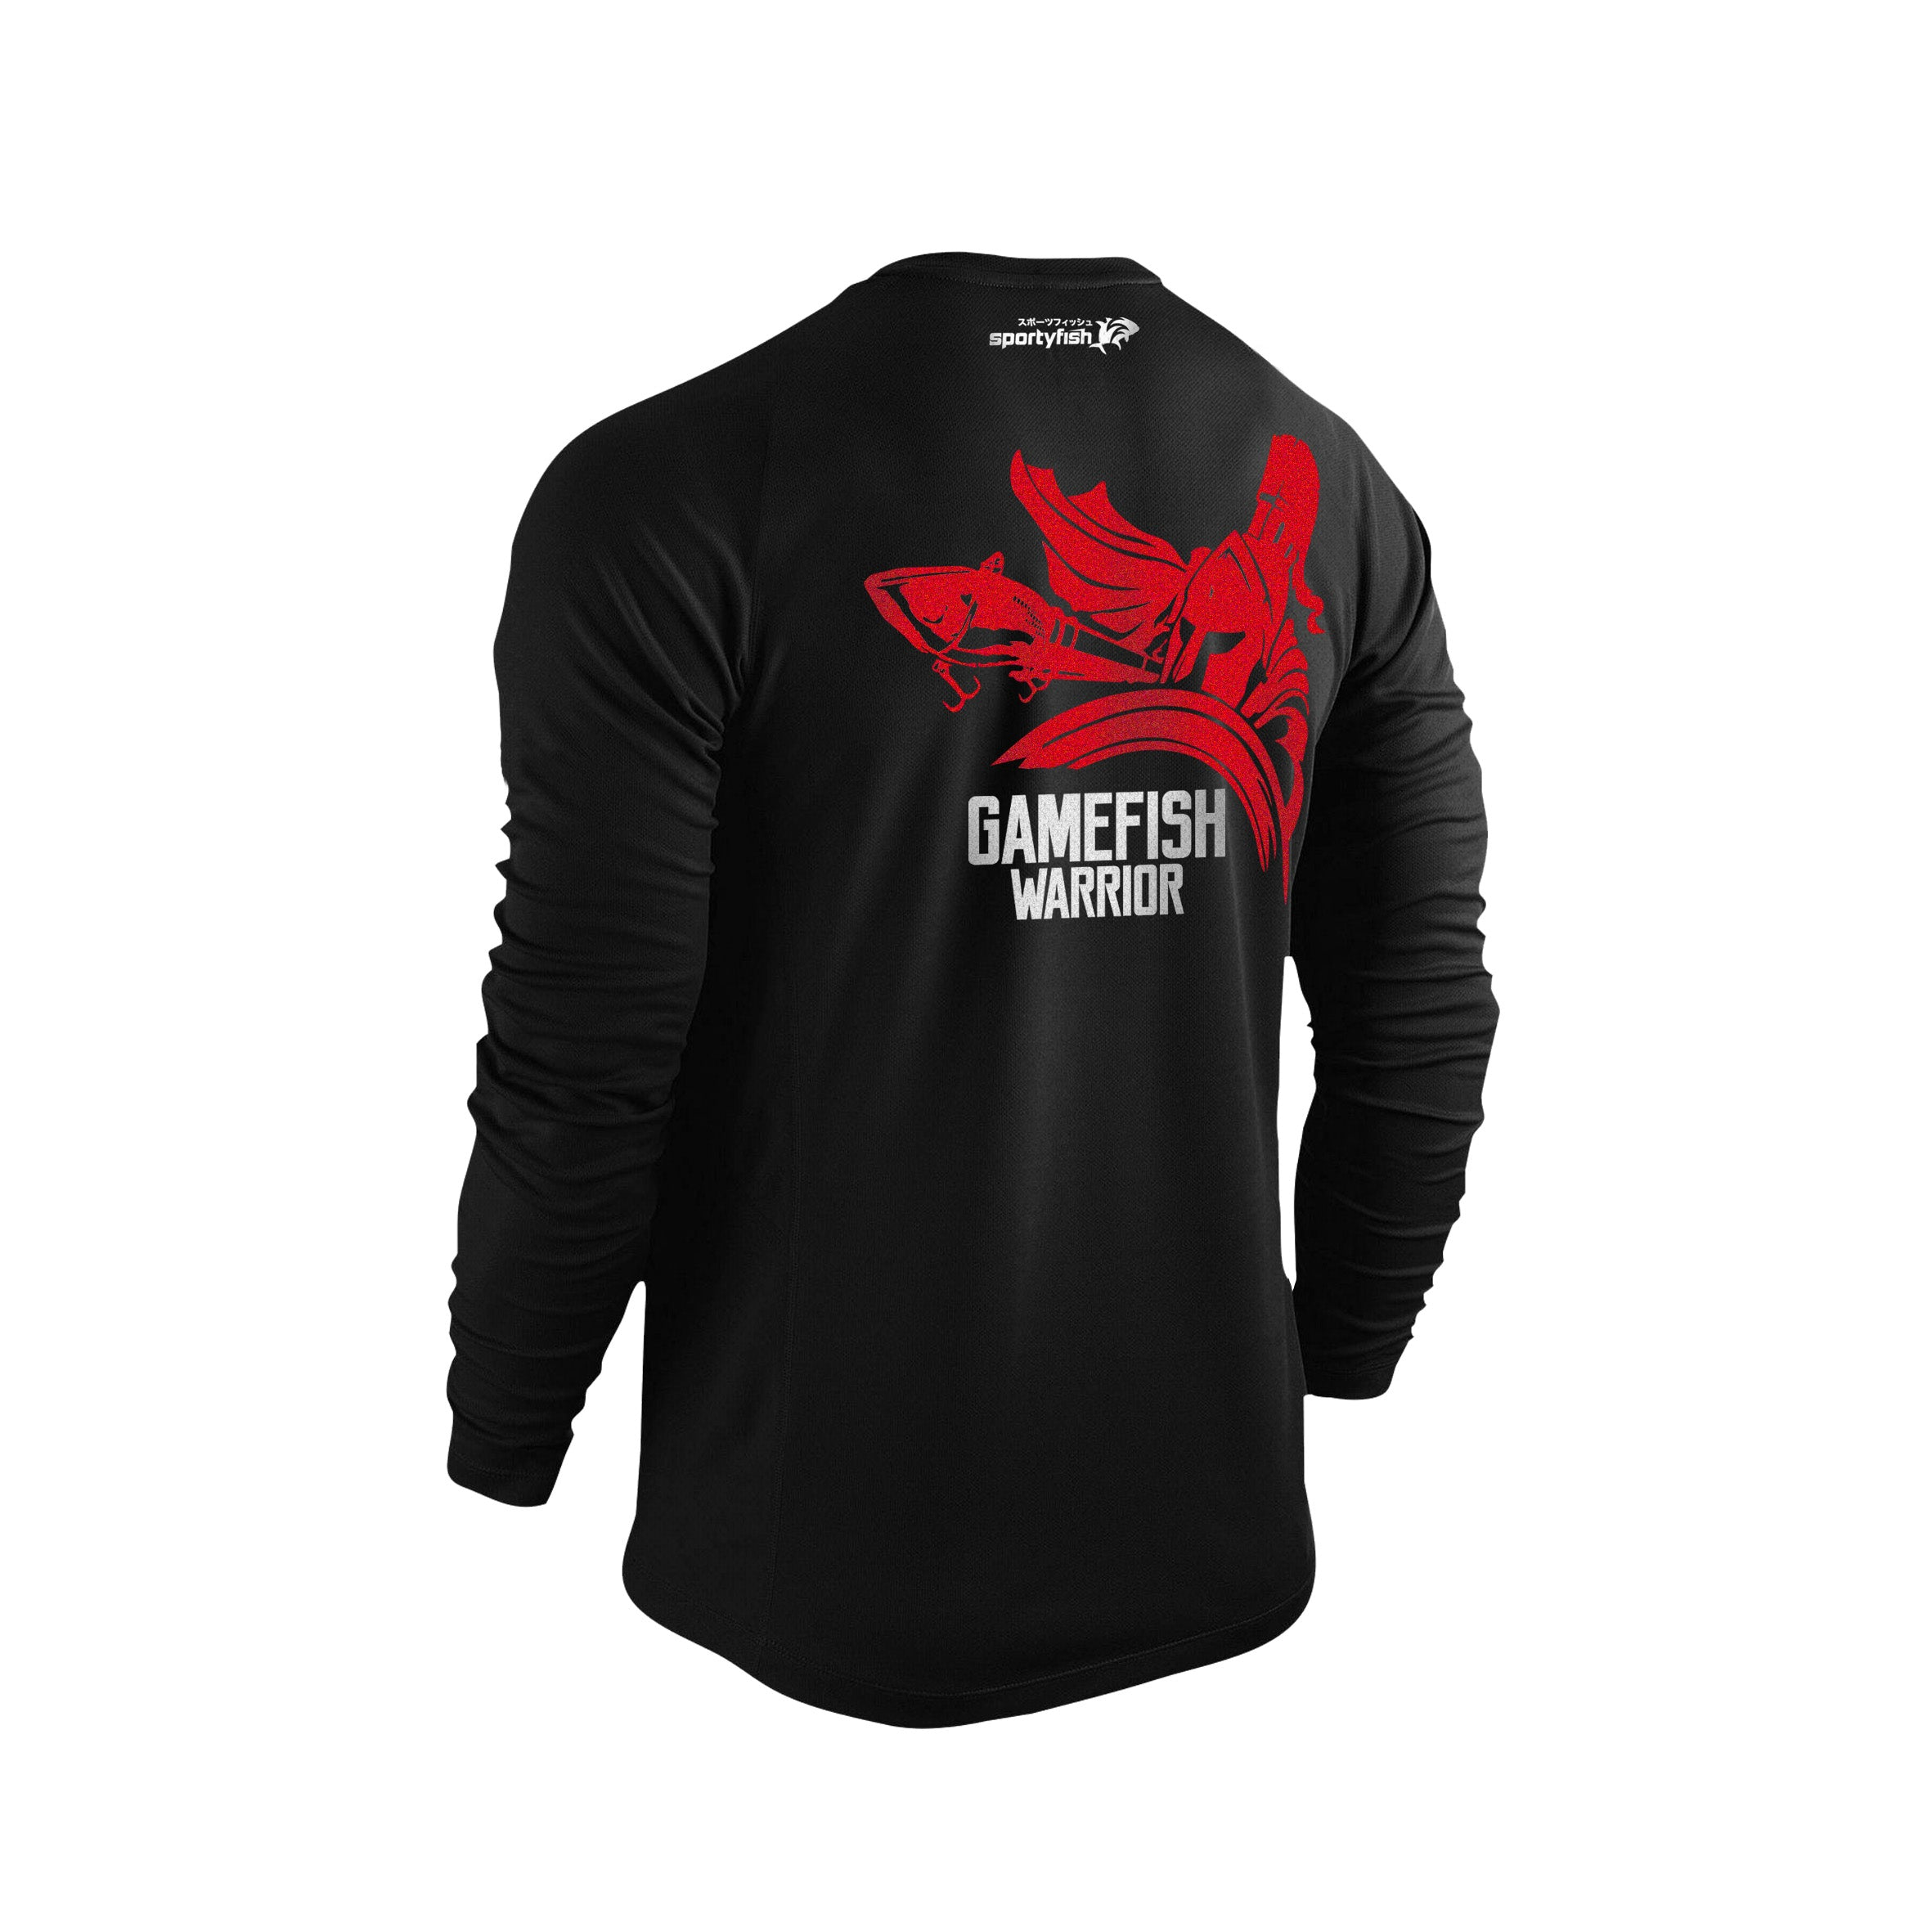 GameFish Warrior Series Long-sleeves T-shirt(back view): The Lure